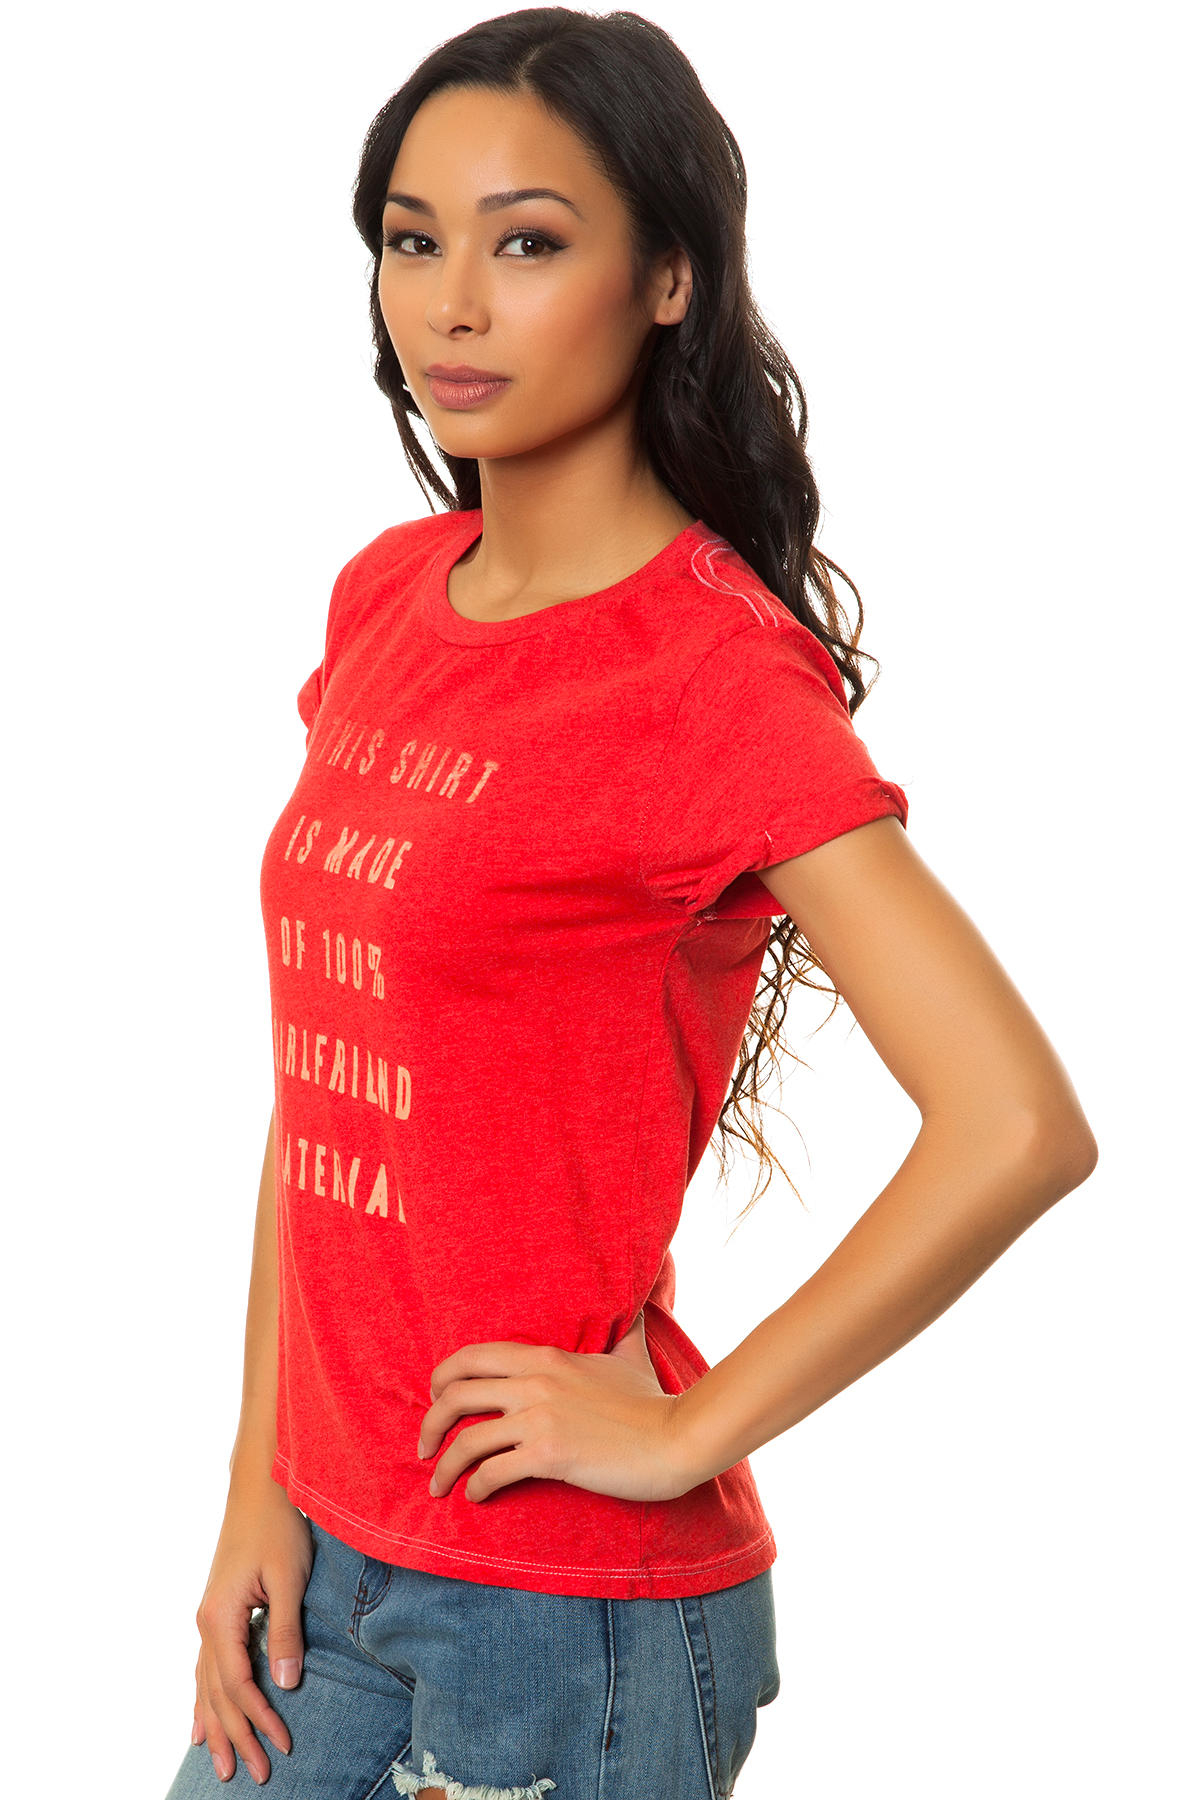 Customizable women's Local Celebrity clothing from southhe-load.tk - Choose your favorite designs for ladies' t-shirts, hoodies, shoes & more!